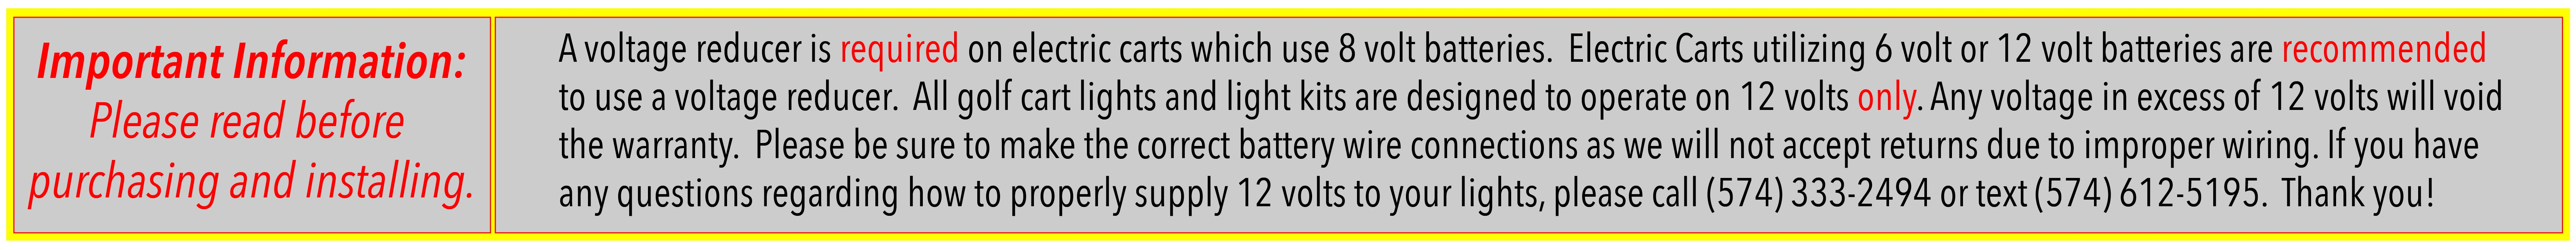 Warning label to ensure light kit is only hooked up to 12 volts.